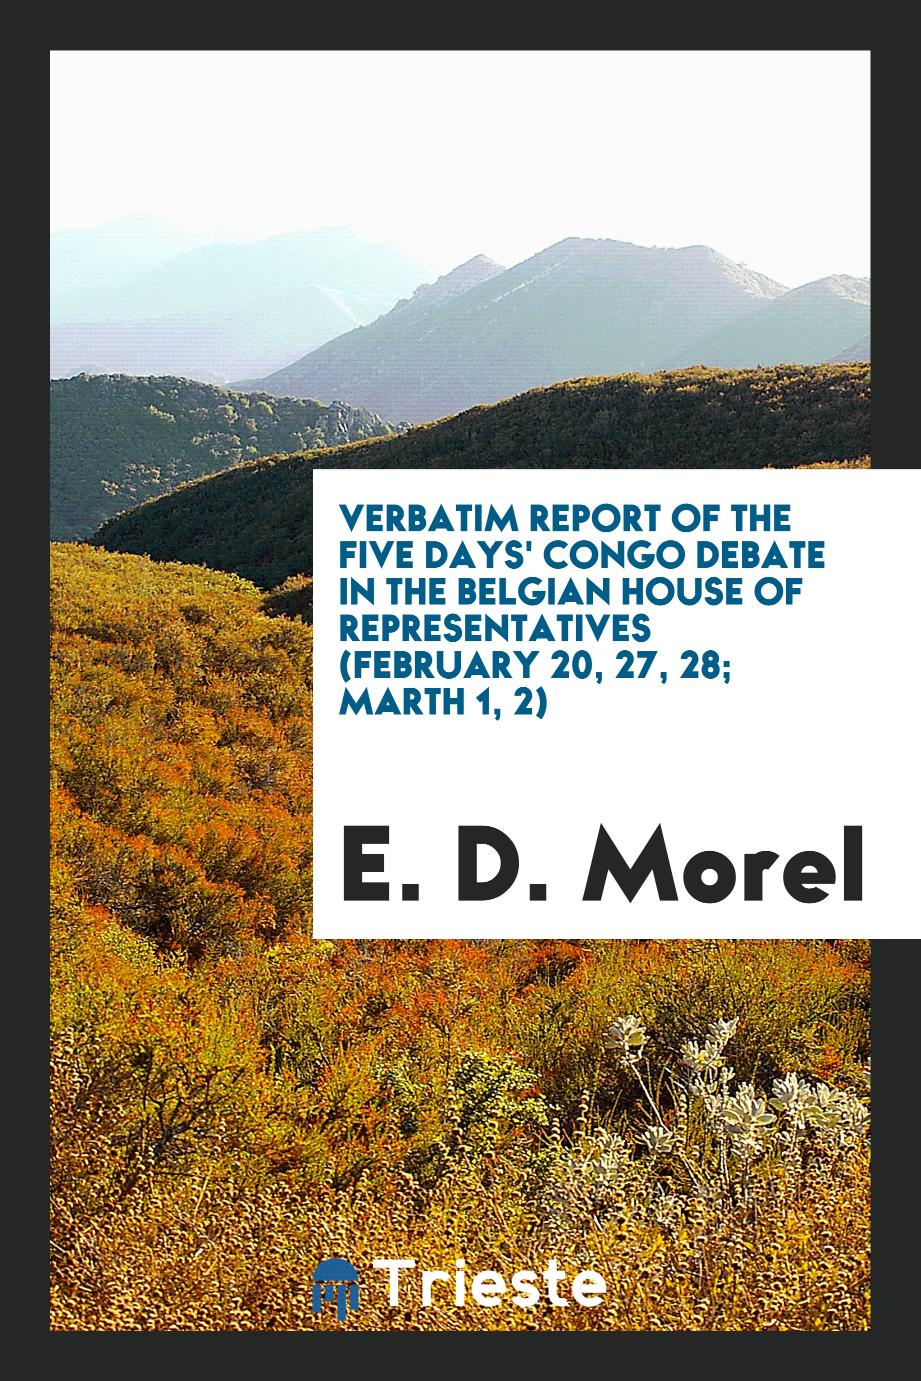 Verbatim report of the five days' Congo debate in the Belgian House of Representatives (February 20, 27, 28; Marth 1, 2)